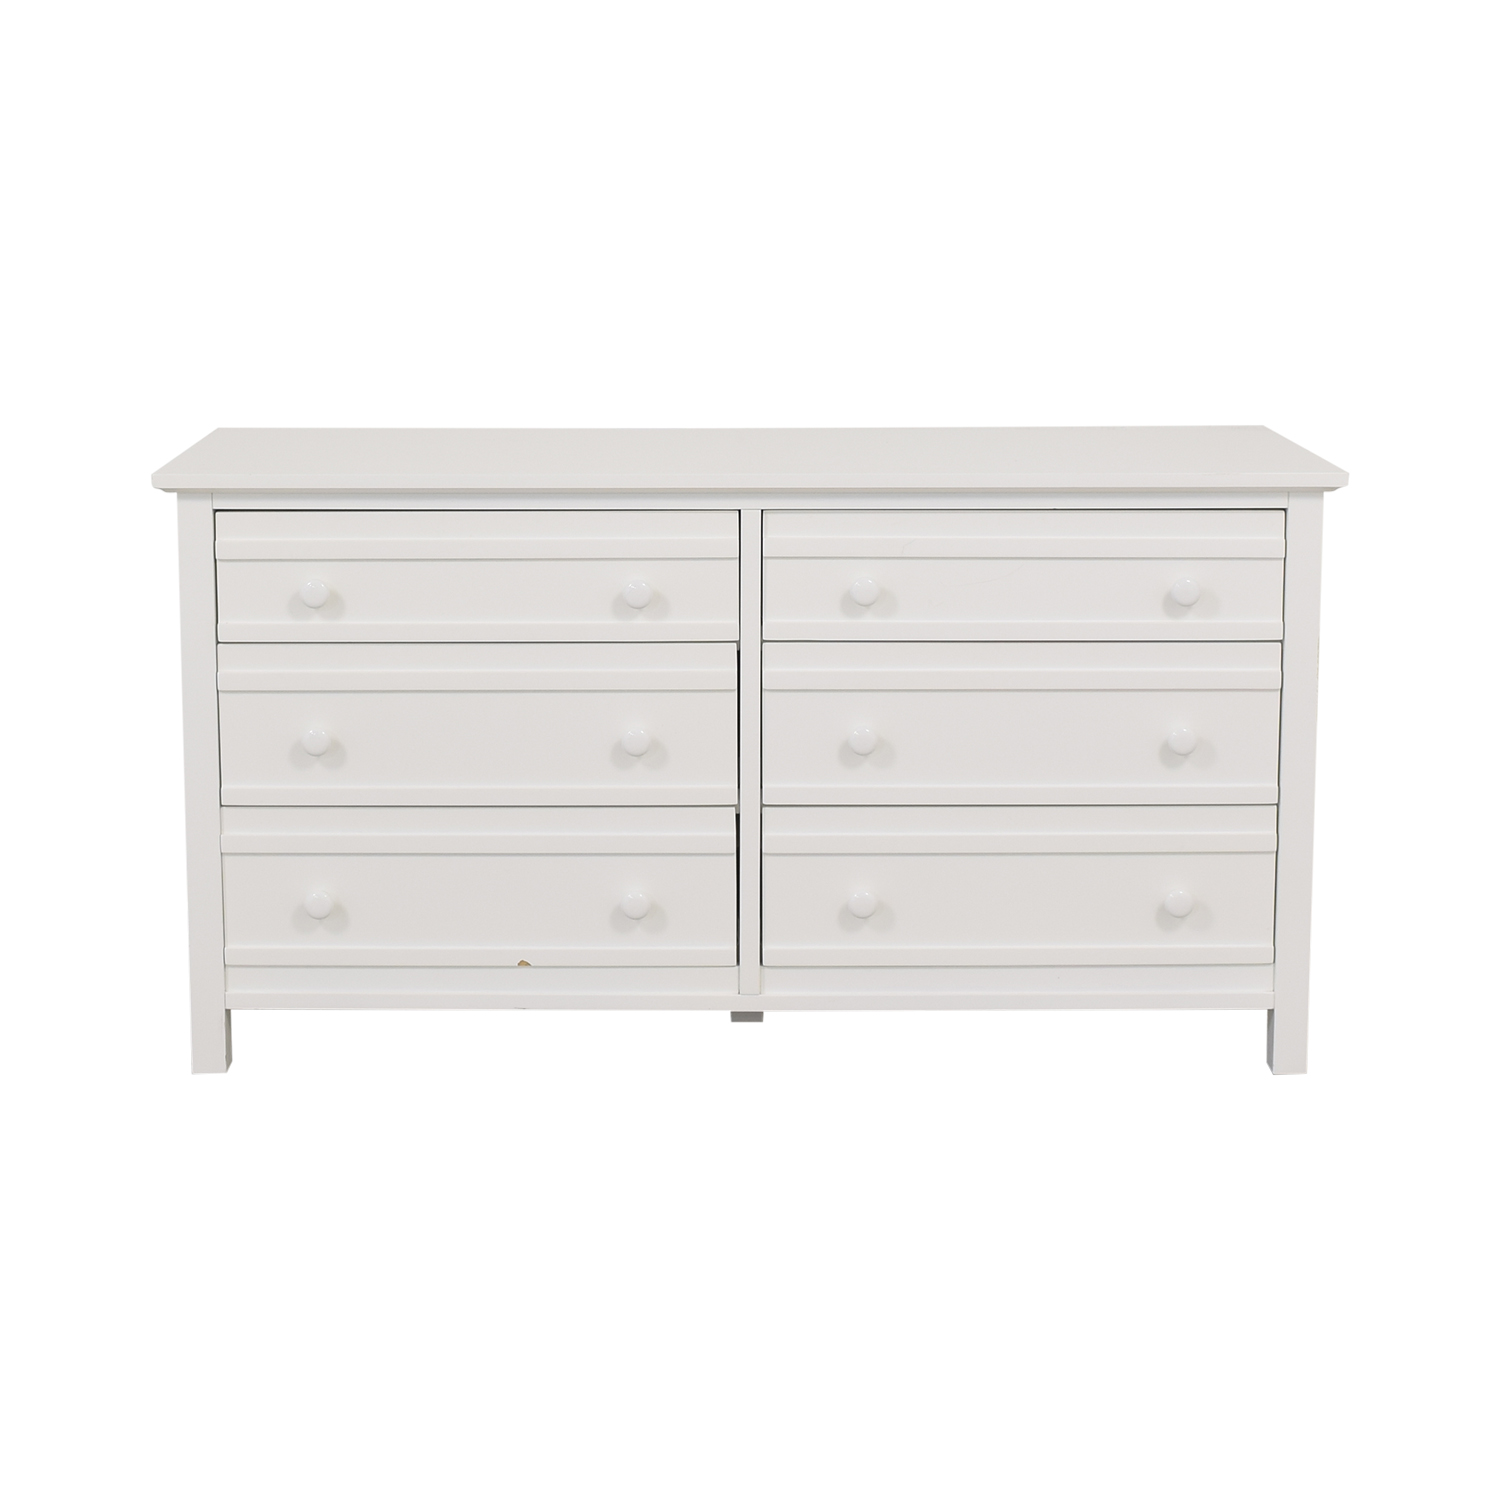 buy Crate & Barrel Crate & Barrel Brighton Six Drawer Dresser online